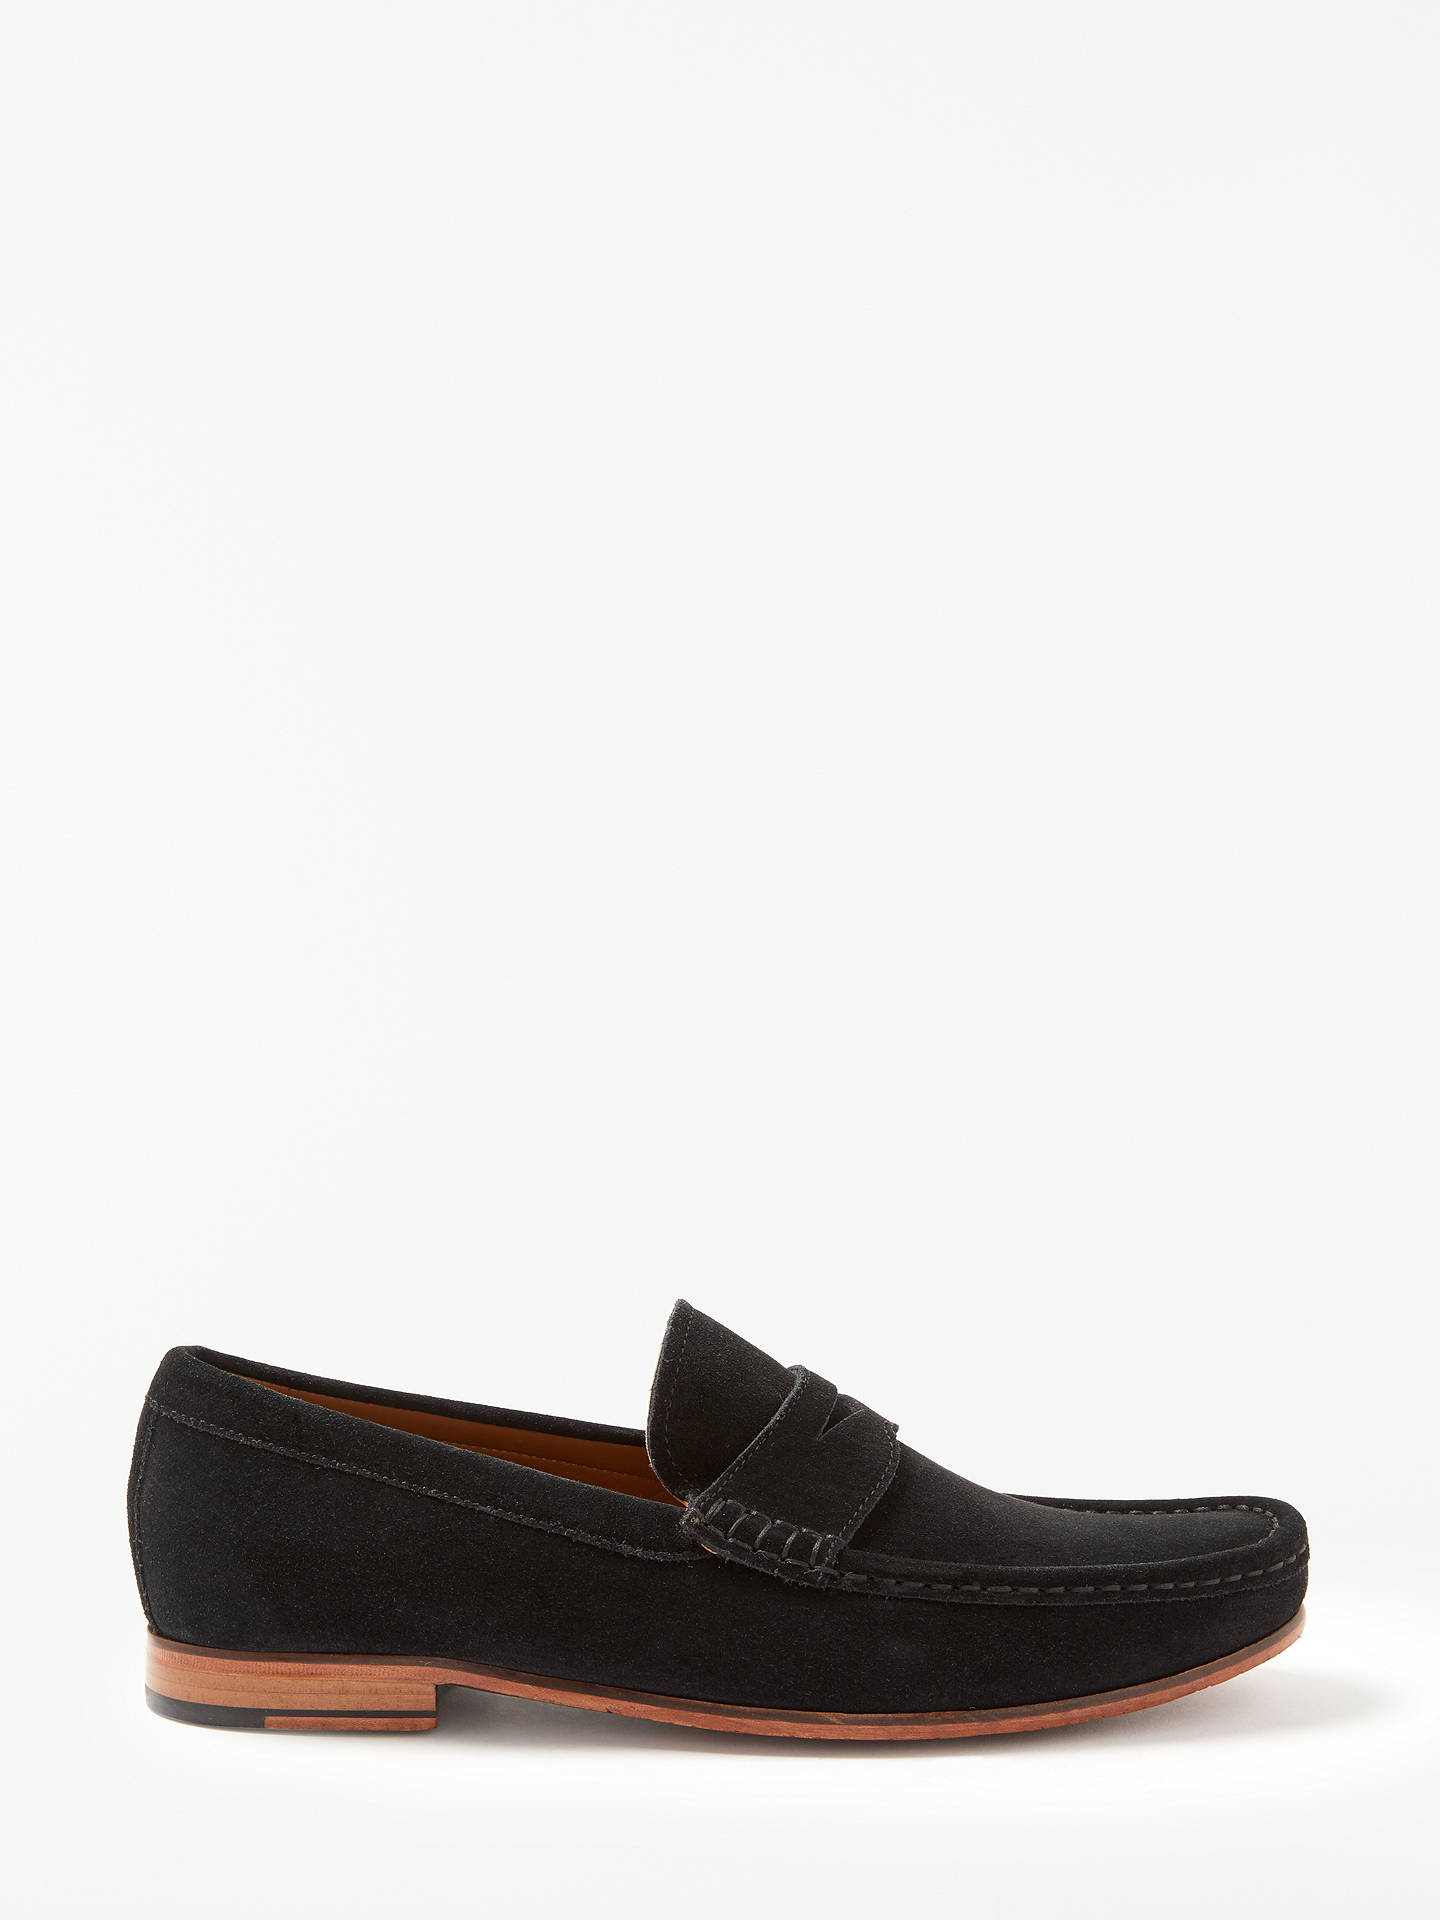 7dff87c7dbb John Lewis   Partners Louis Suede Penny Loafers at John Lewis   Partners